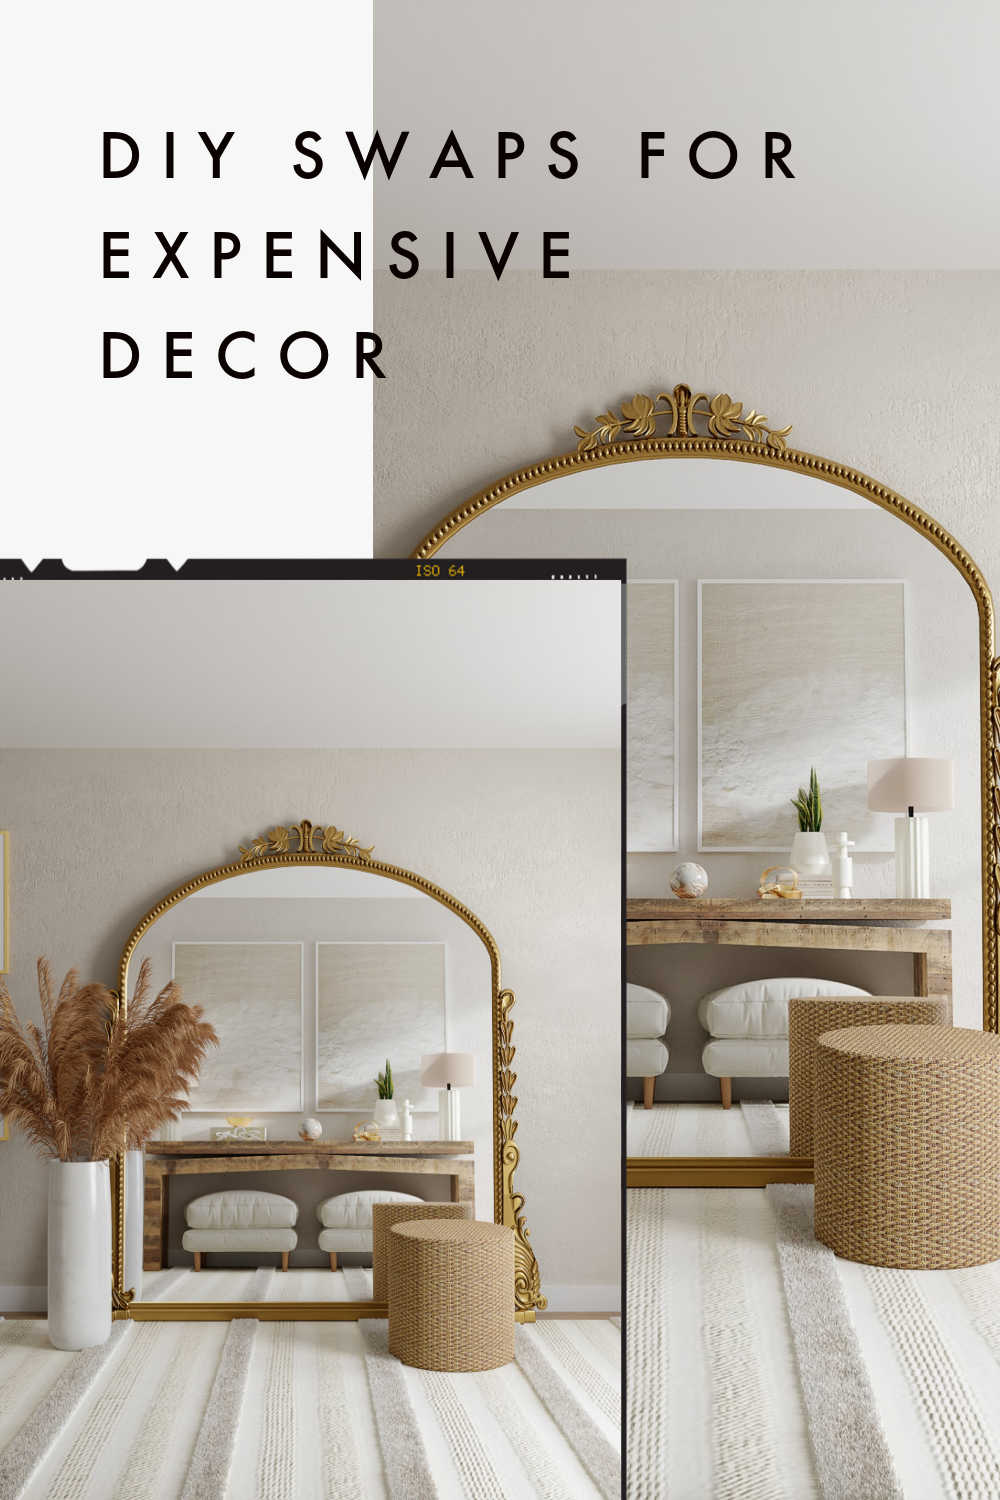 DIY SWAPS FOR EXPENSIVE DECOR